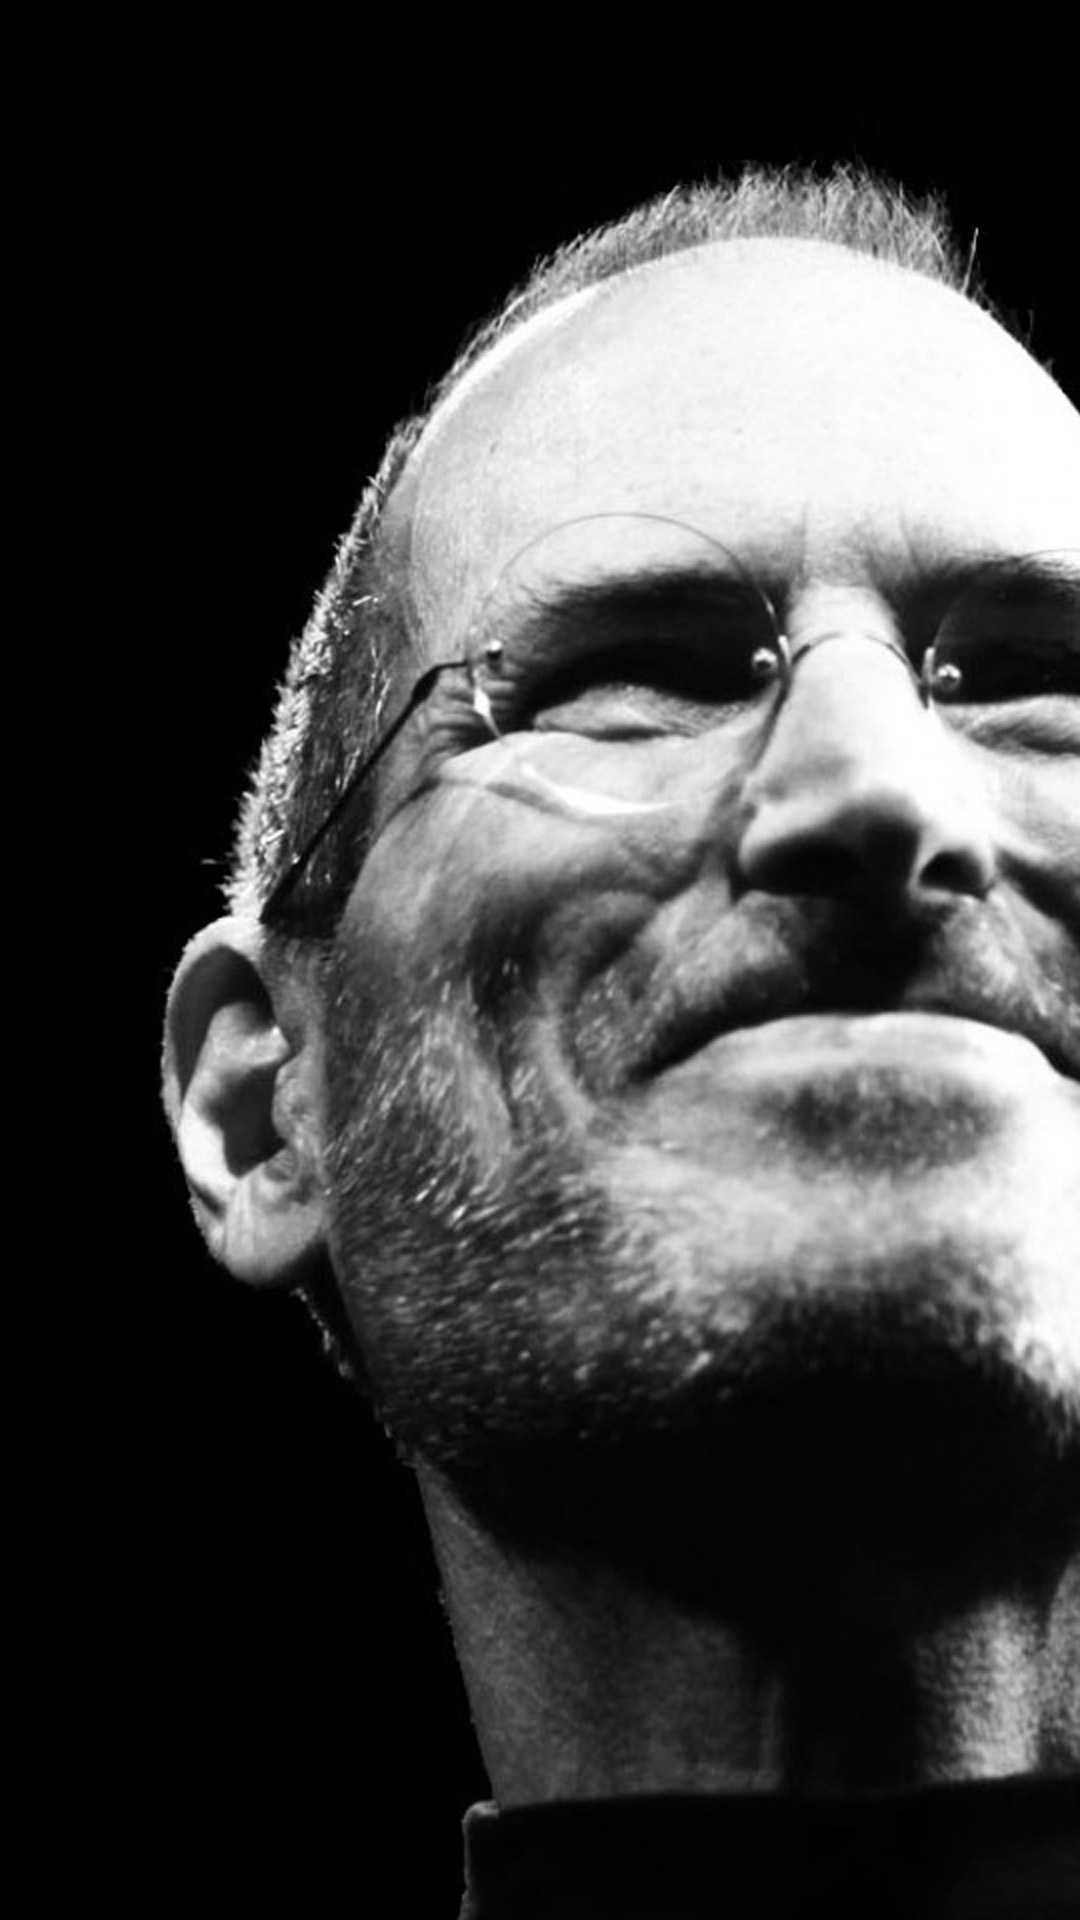 Create Your Own Iphone Wallpaper Steve Jobs Tribute Wallpapers For Iphone 6 And Iphone 6 Plus